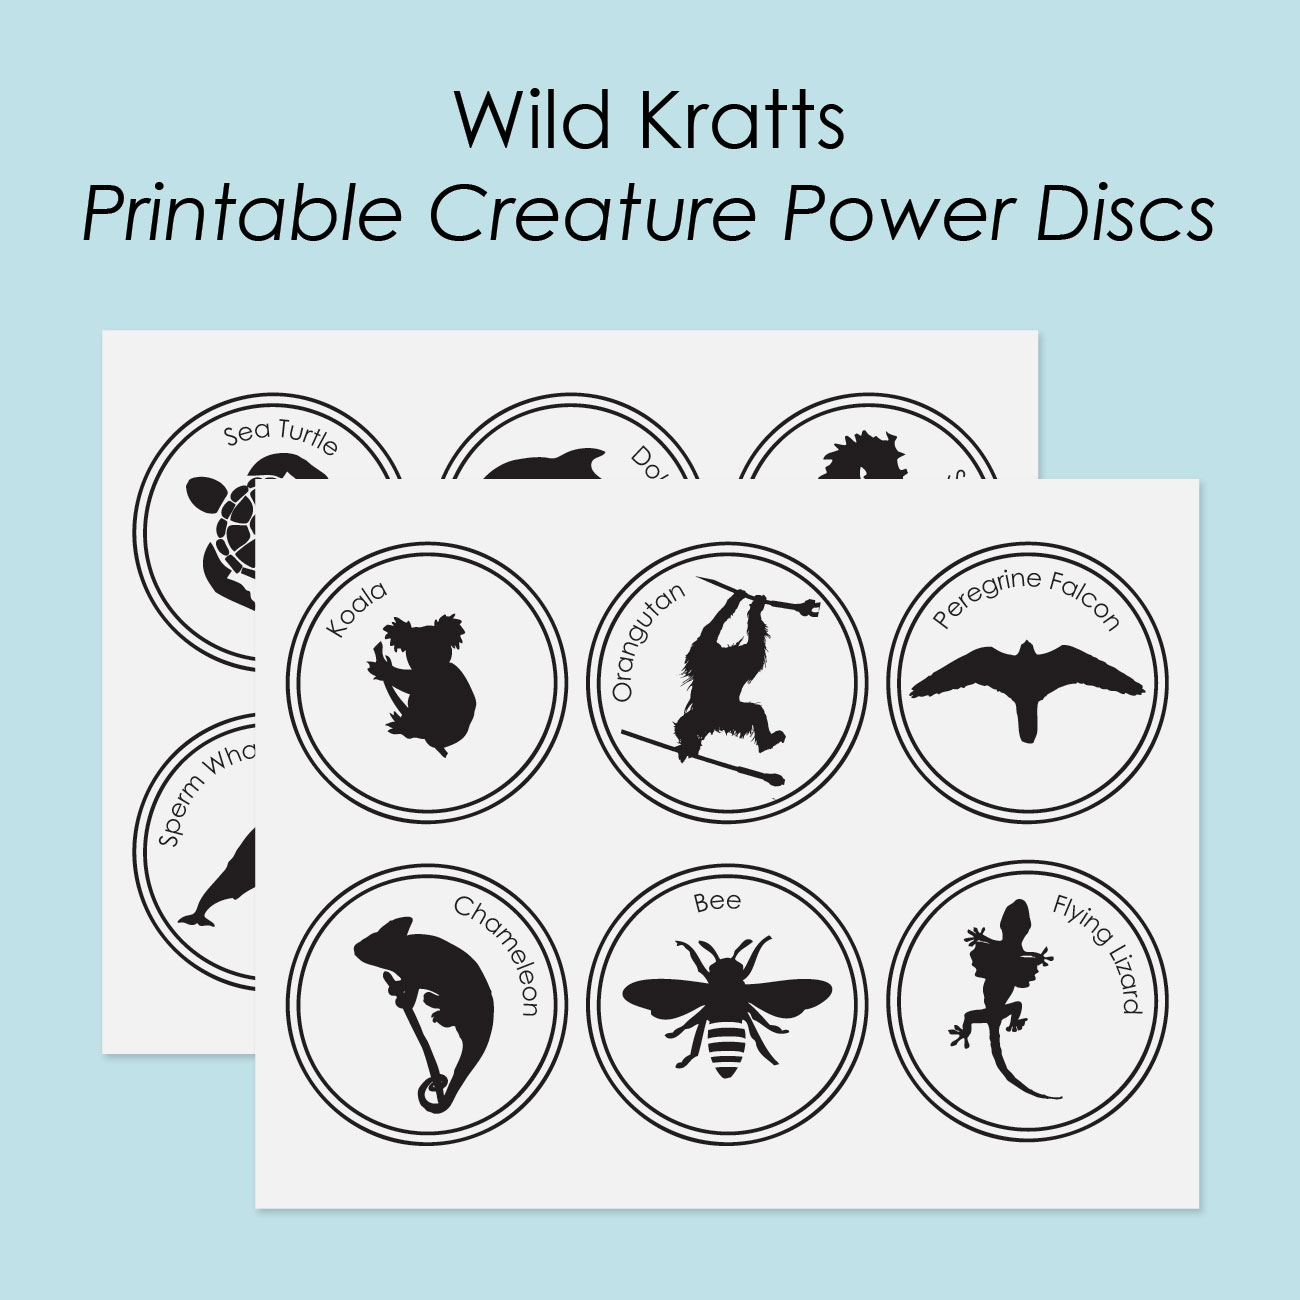 image regarding Wild Kratts Creature Power Discs Printable titled Totally free Printable Creature Electricity Discs - brilliant apple blossom